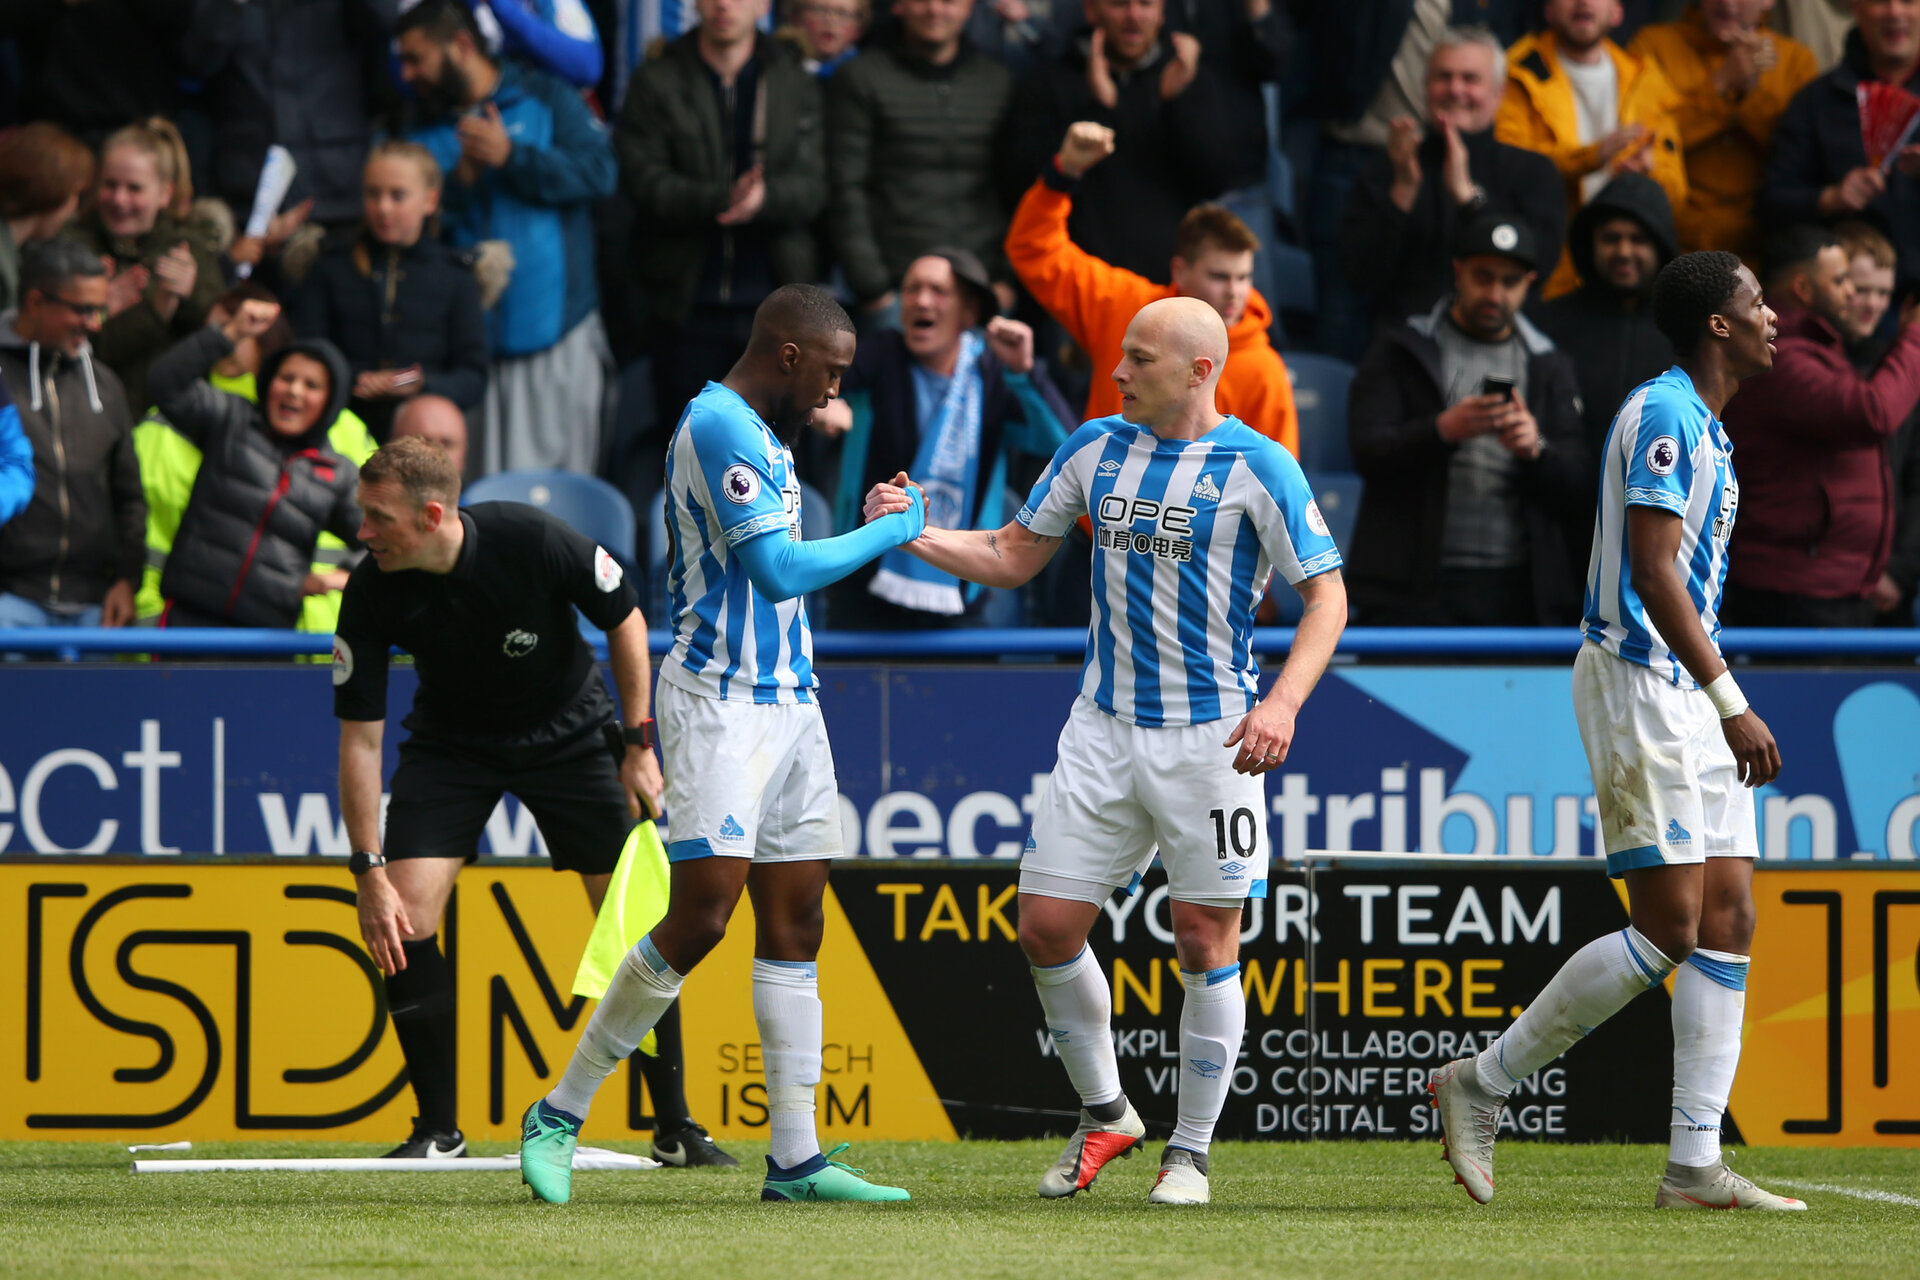 HUDDERSFIELD, ENGLAND - MAY 05:  Isaac Mbenza of Huddersfield Town celebrates as he scores his team's first goal with Aaron Mooy during the Premier League match between Huddersfield Town and Manchester United at John Smith's Stadium on May 05, 2019 in Huddersfield, United Kingdom. (Photo by Alex Livesey/Getty Images)